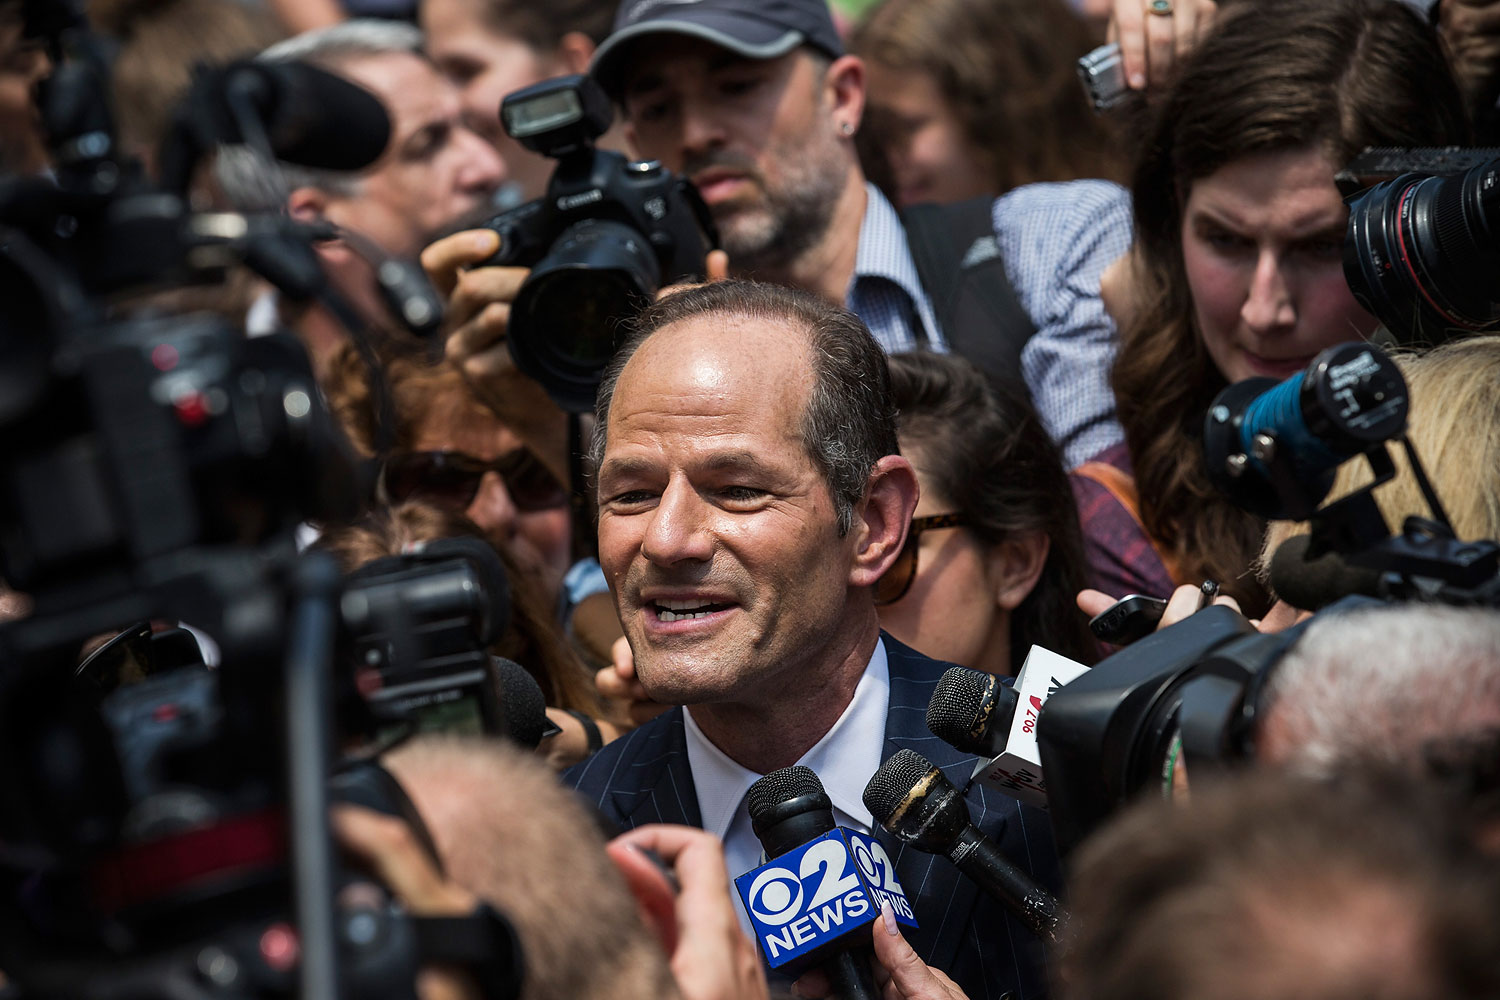 Former New York governor Eliot Spitzer is mobbed by reporters while attempting to collect signatures to run for comptroller of New York City on July 8, 2013, in New York City